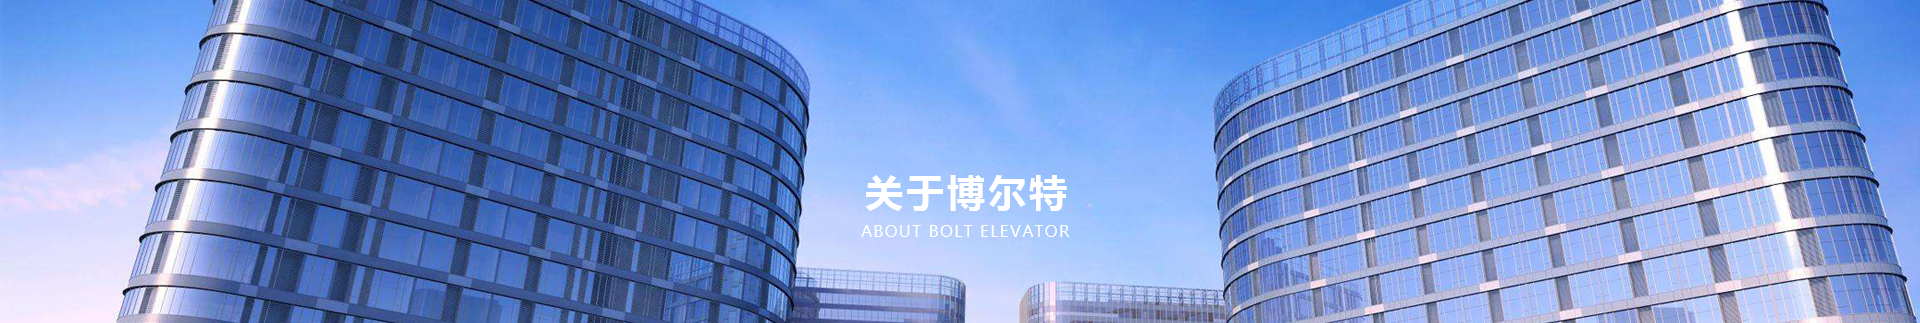 http://www.bolt-elevator.cn/data/upload/201911/20191118101159_909.png